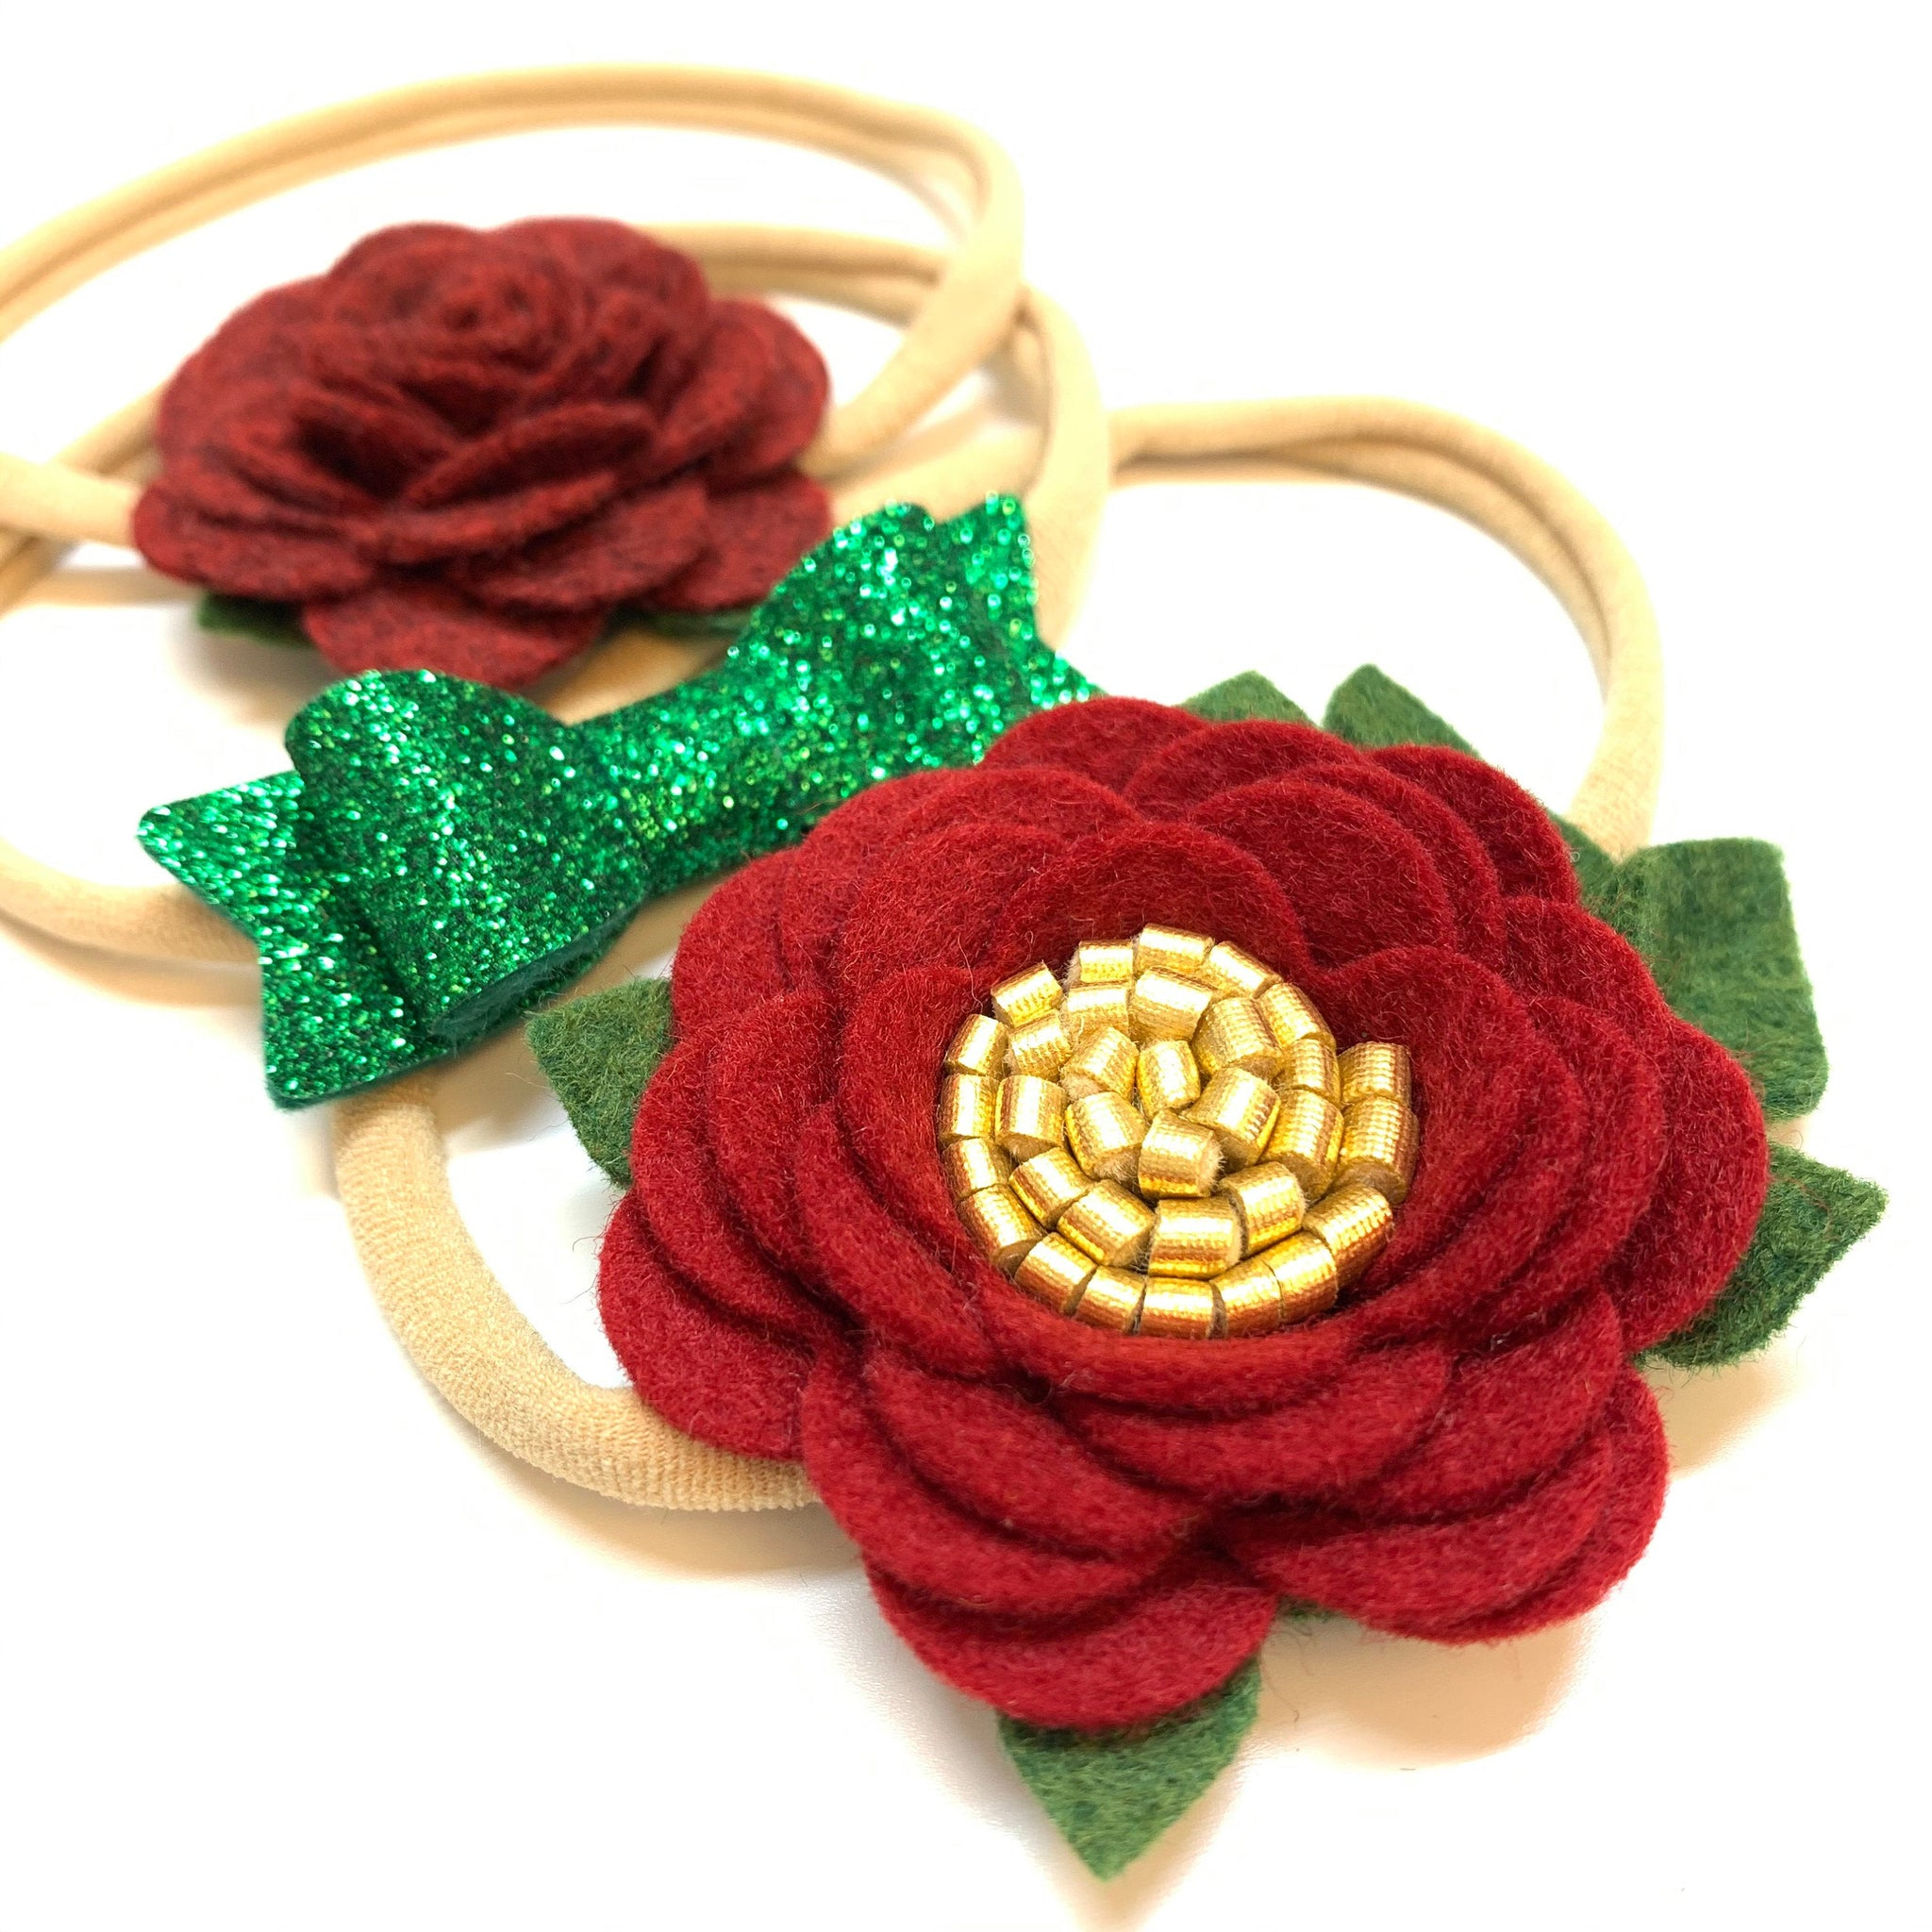 Deep red Mini Flowers, Trio Set, Christmas flower, baby headbands, hair accessories, vanaguelite, floral headbands, kelly green sparkly.